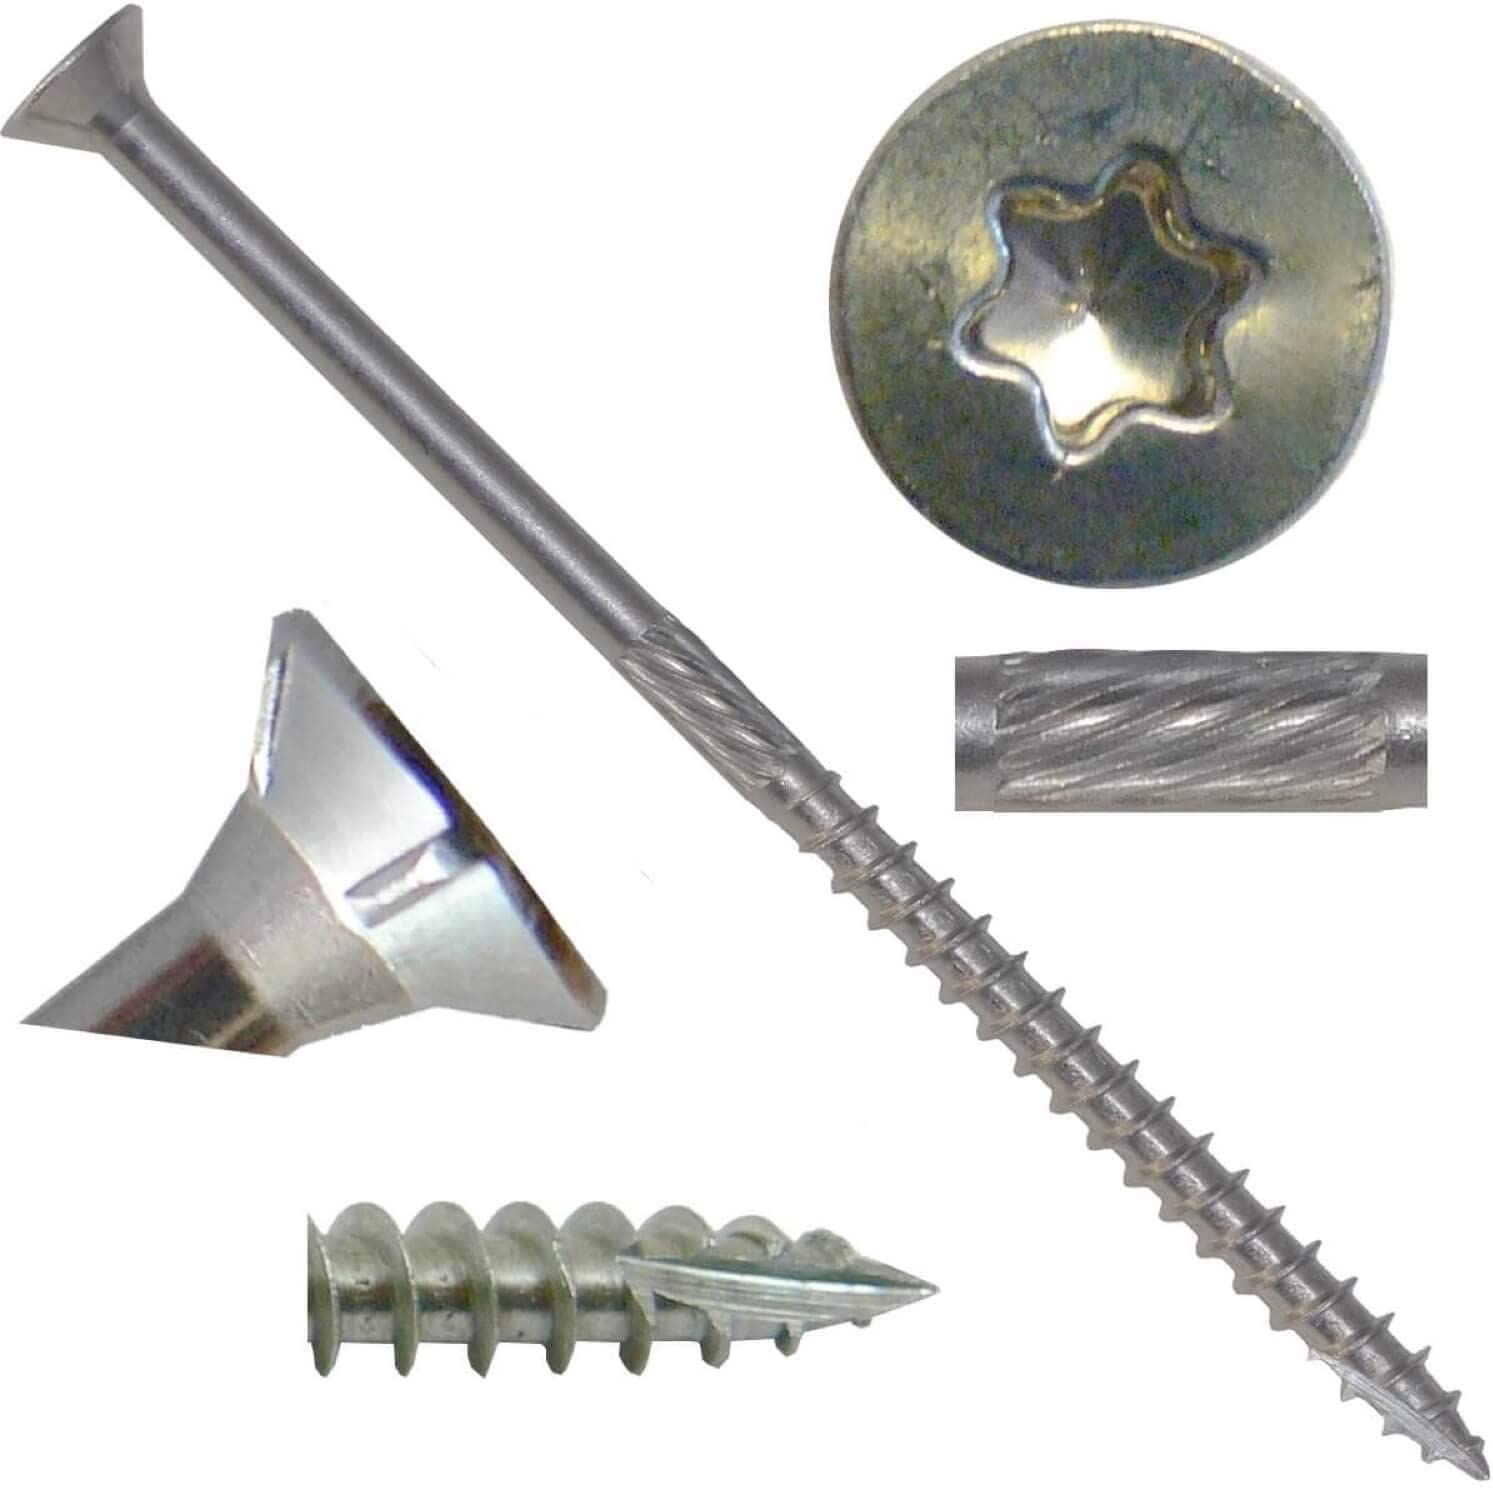 """#10 X 4"""" Silver Star Stainless Steel Wood Screw Torx/Star Drive Head (1 Pound - 56 Approx. Screw Count) - Grade 305 Stainless Steel Torx/Star Drive Wood Screws"""